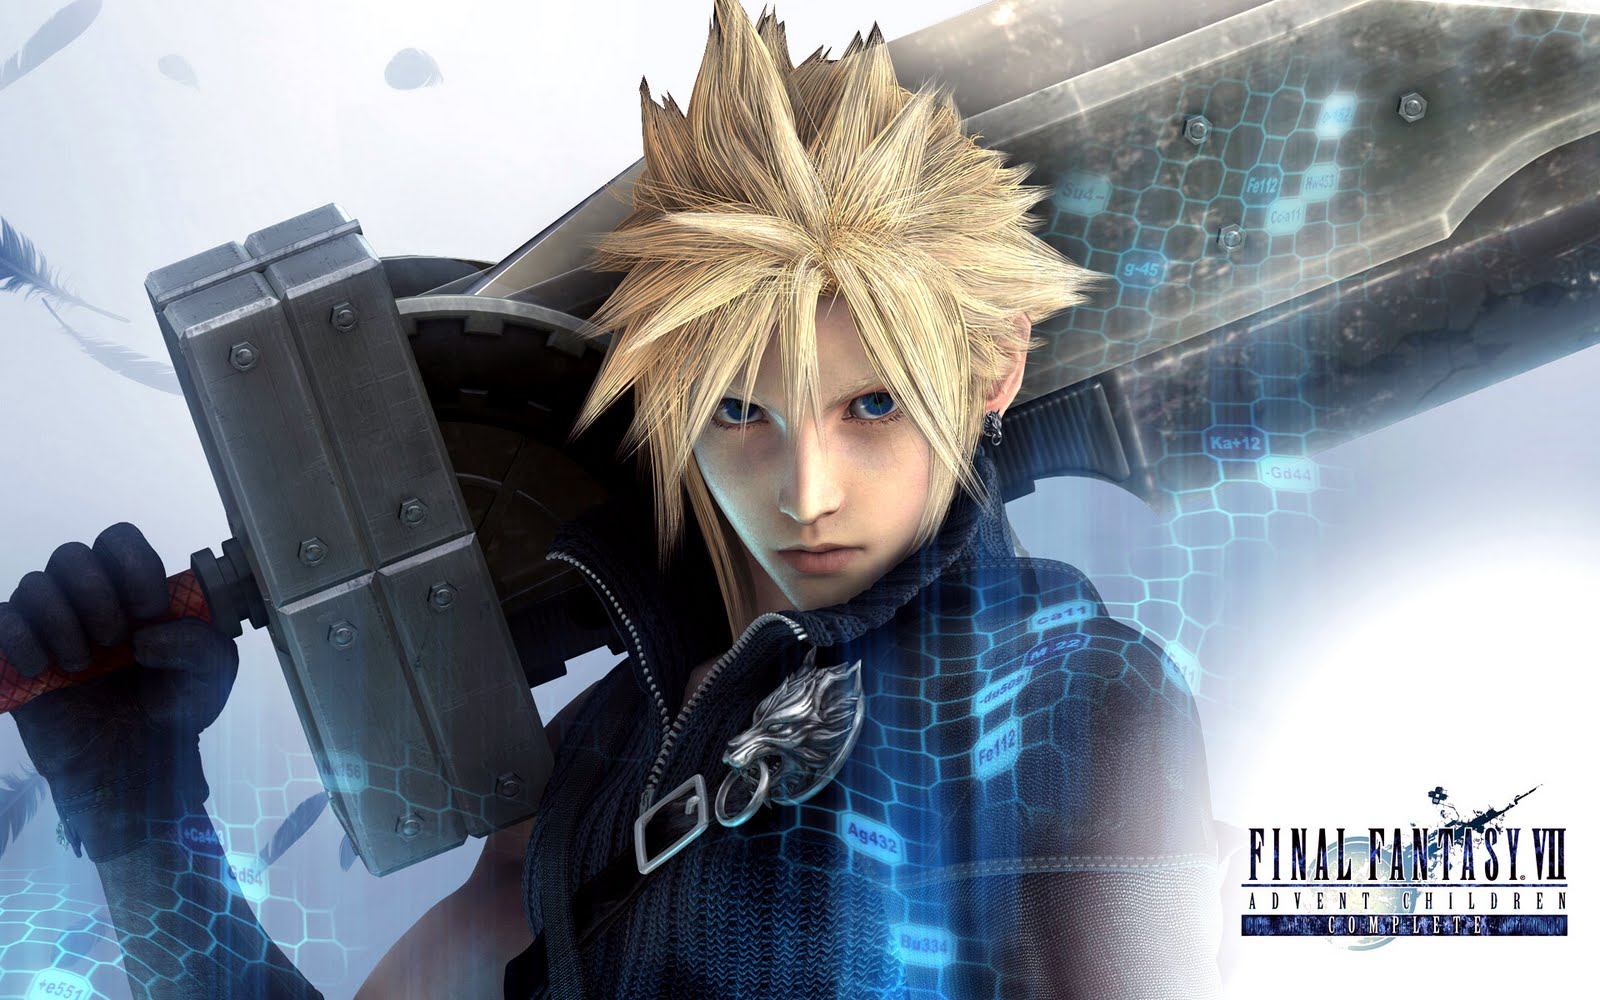 http://3.bp.blogspot.com/-jgaEeTiZmE0/TbPm7S1scRI/AAAAAAAAAAM/4MnRRY1teyk/s1600/final-fantasy-advent-children-cloud-wallpaper.jpg